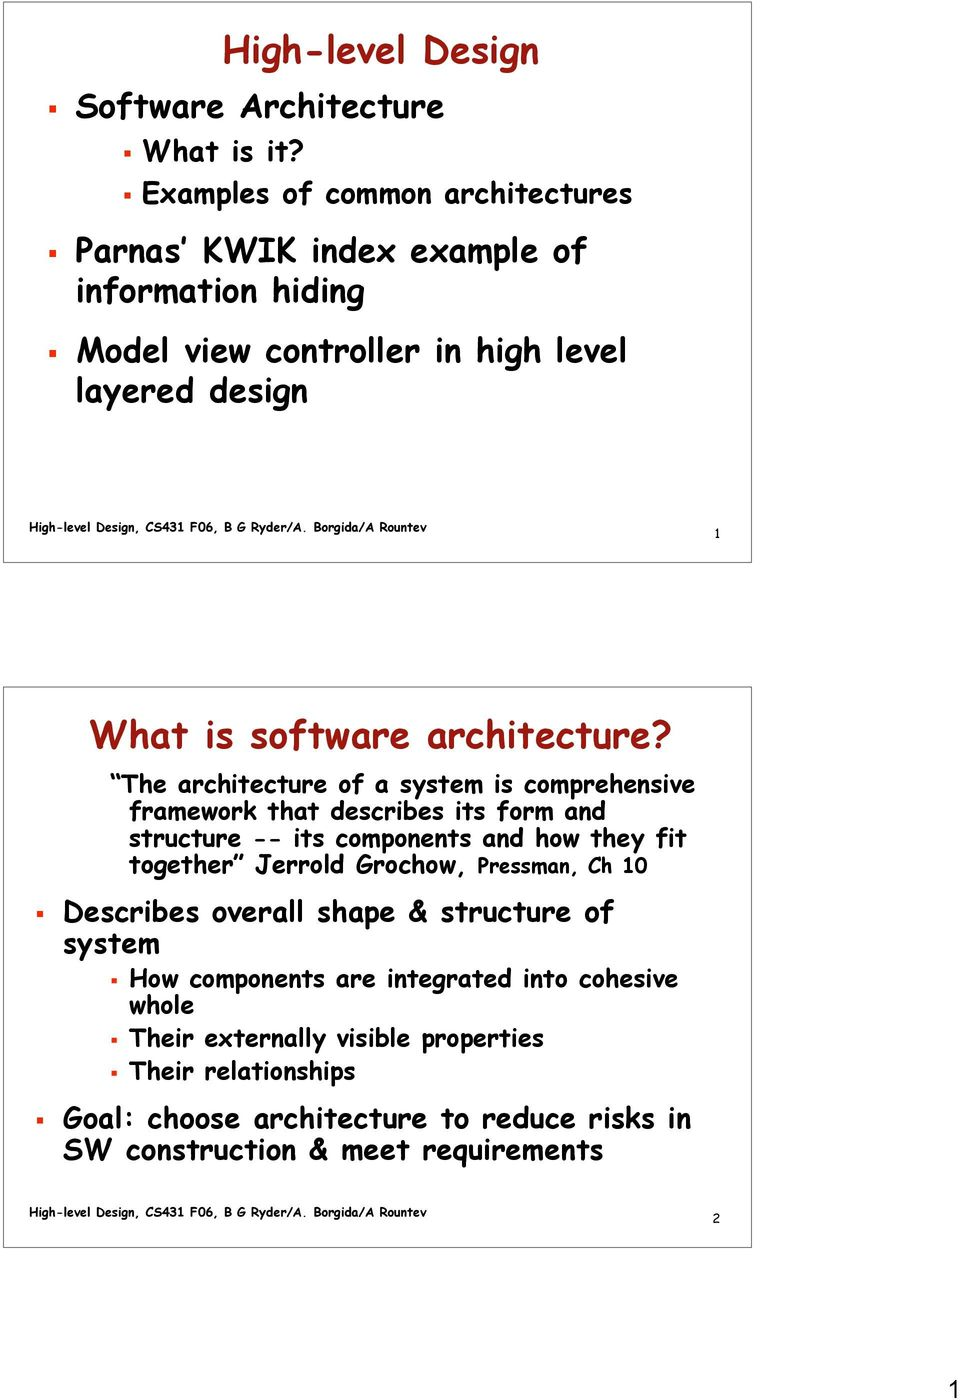 High Level Design What Is Software Architecture Pdf Free Download